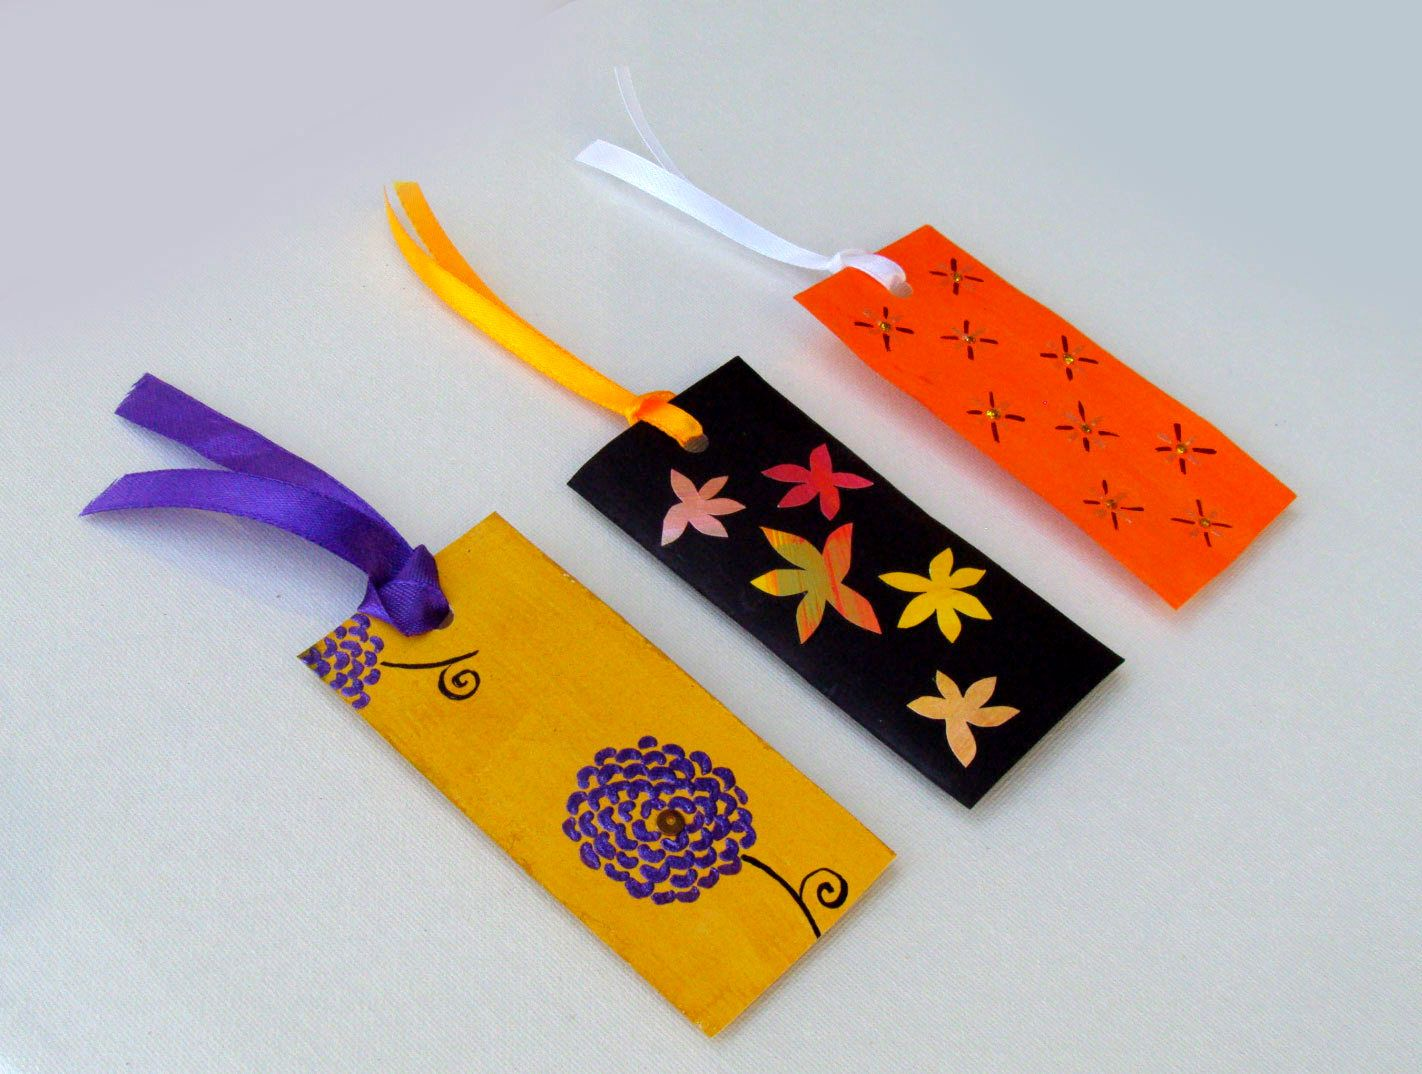 Handmade Bookmarks For Sale Handmade Gift Items India Online